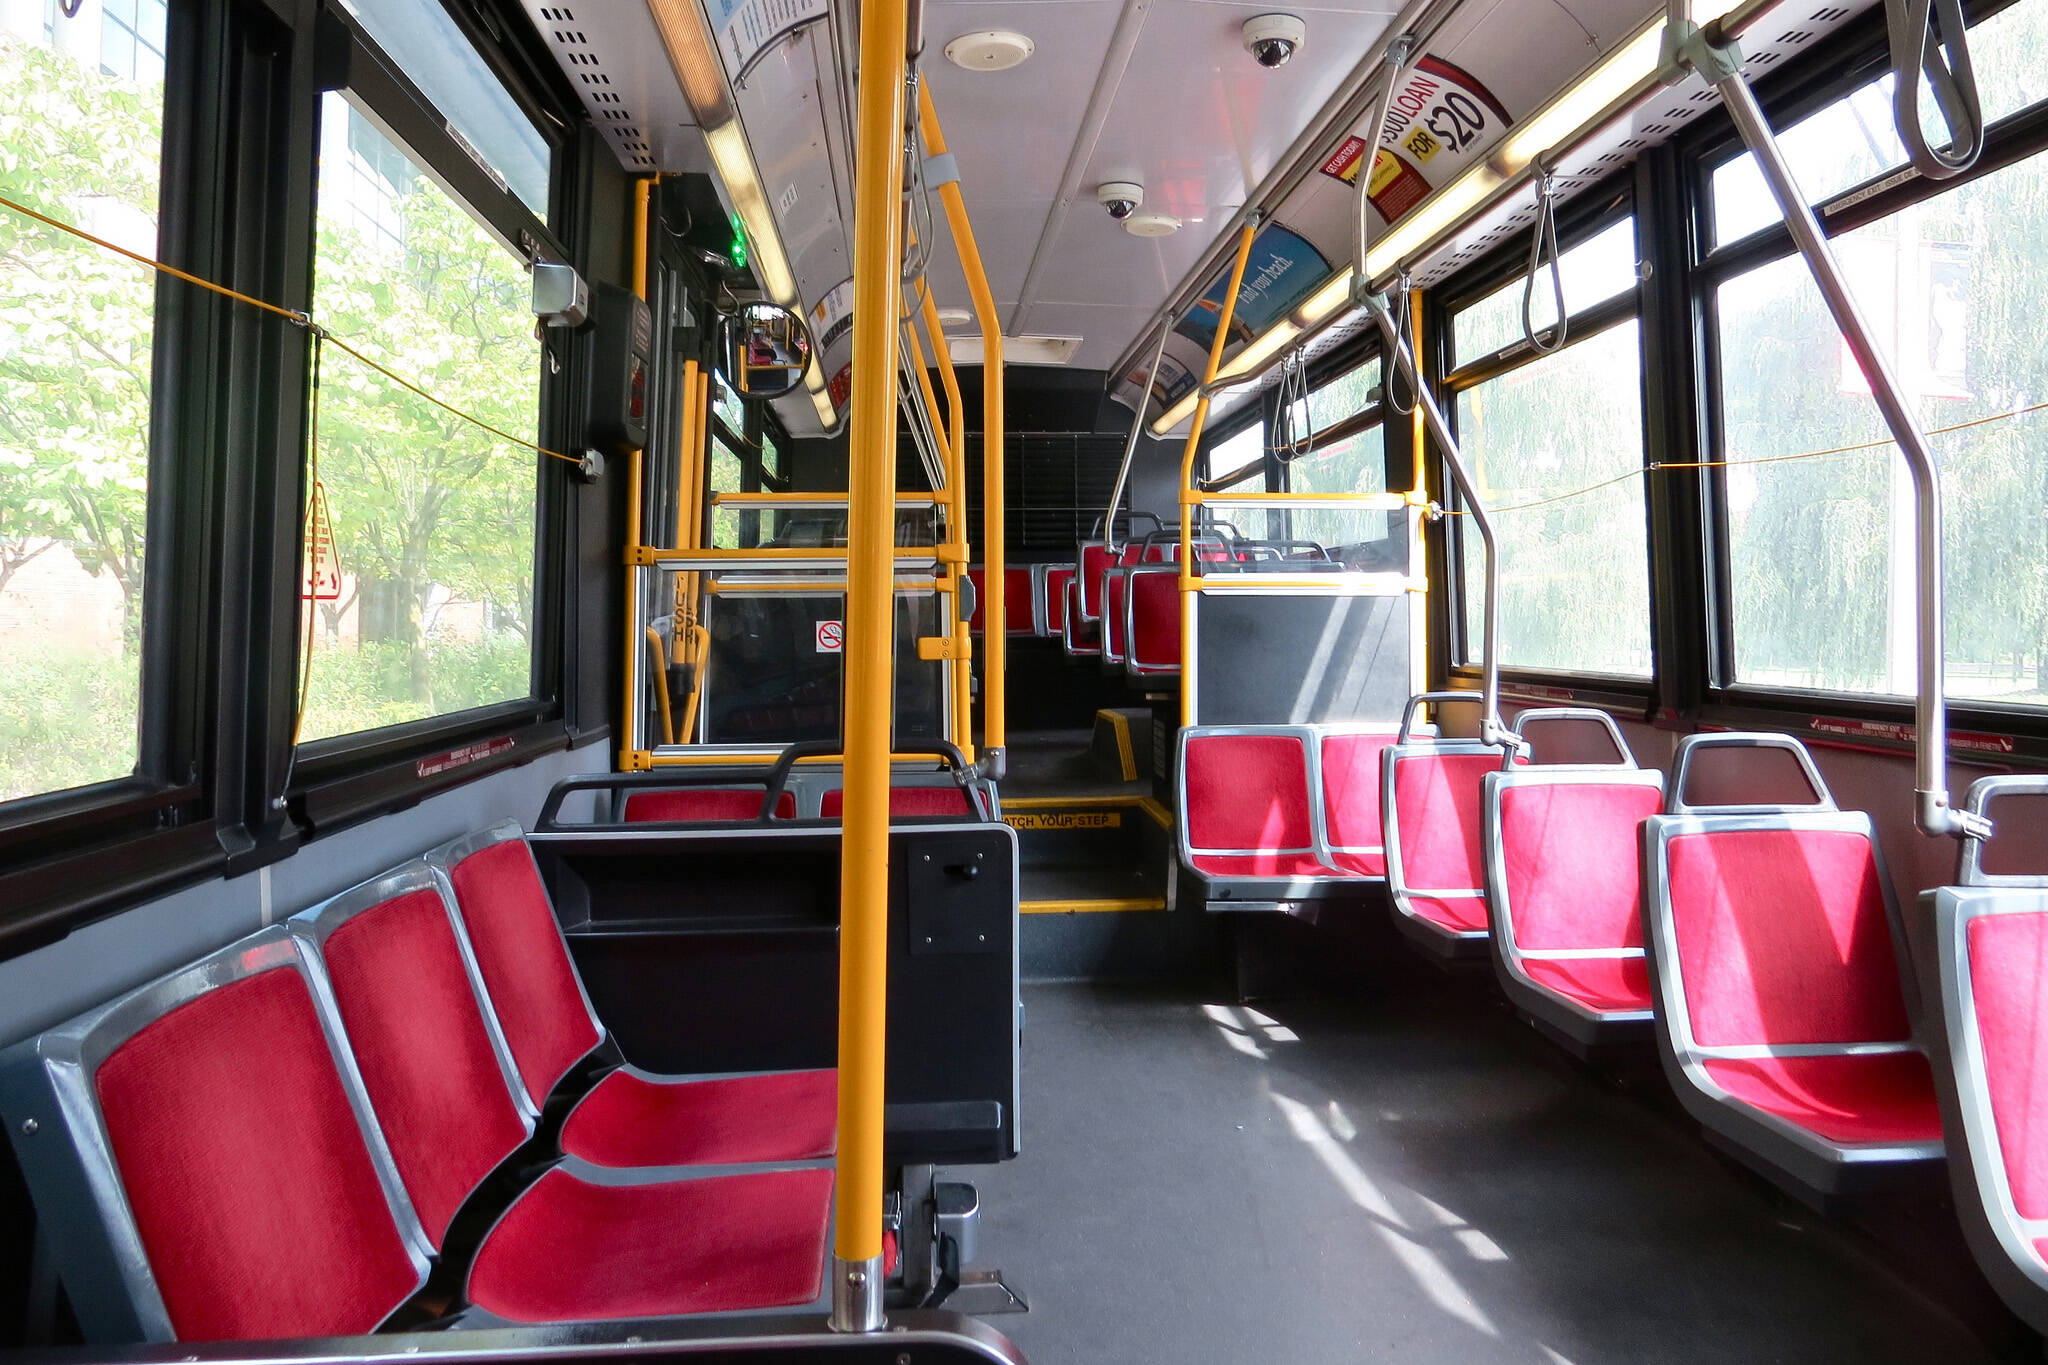 TTC high bus seat